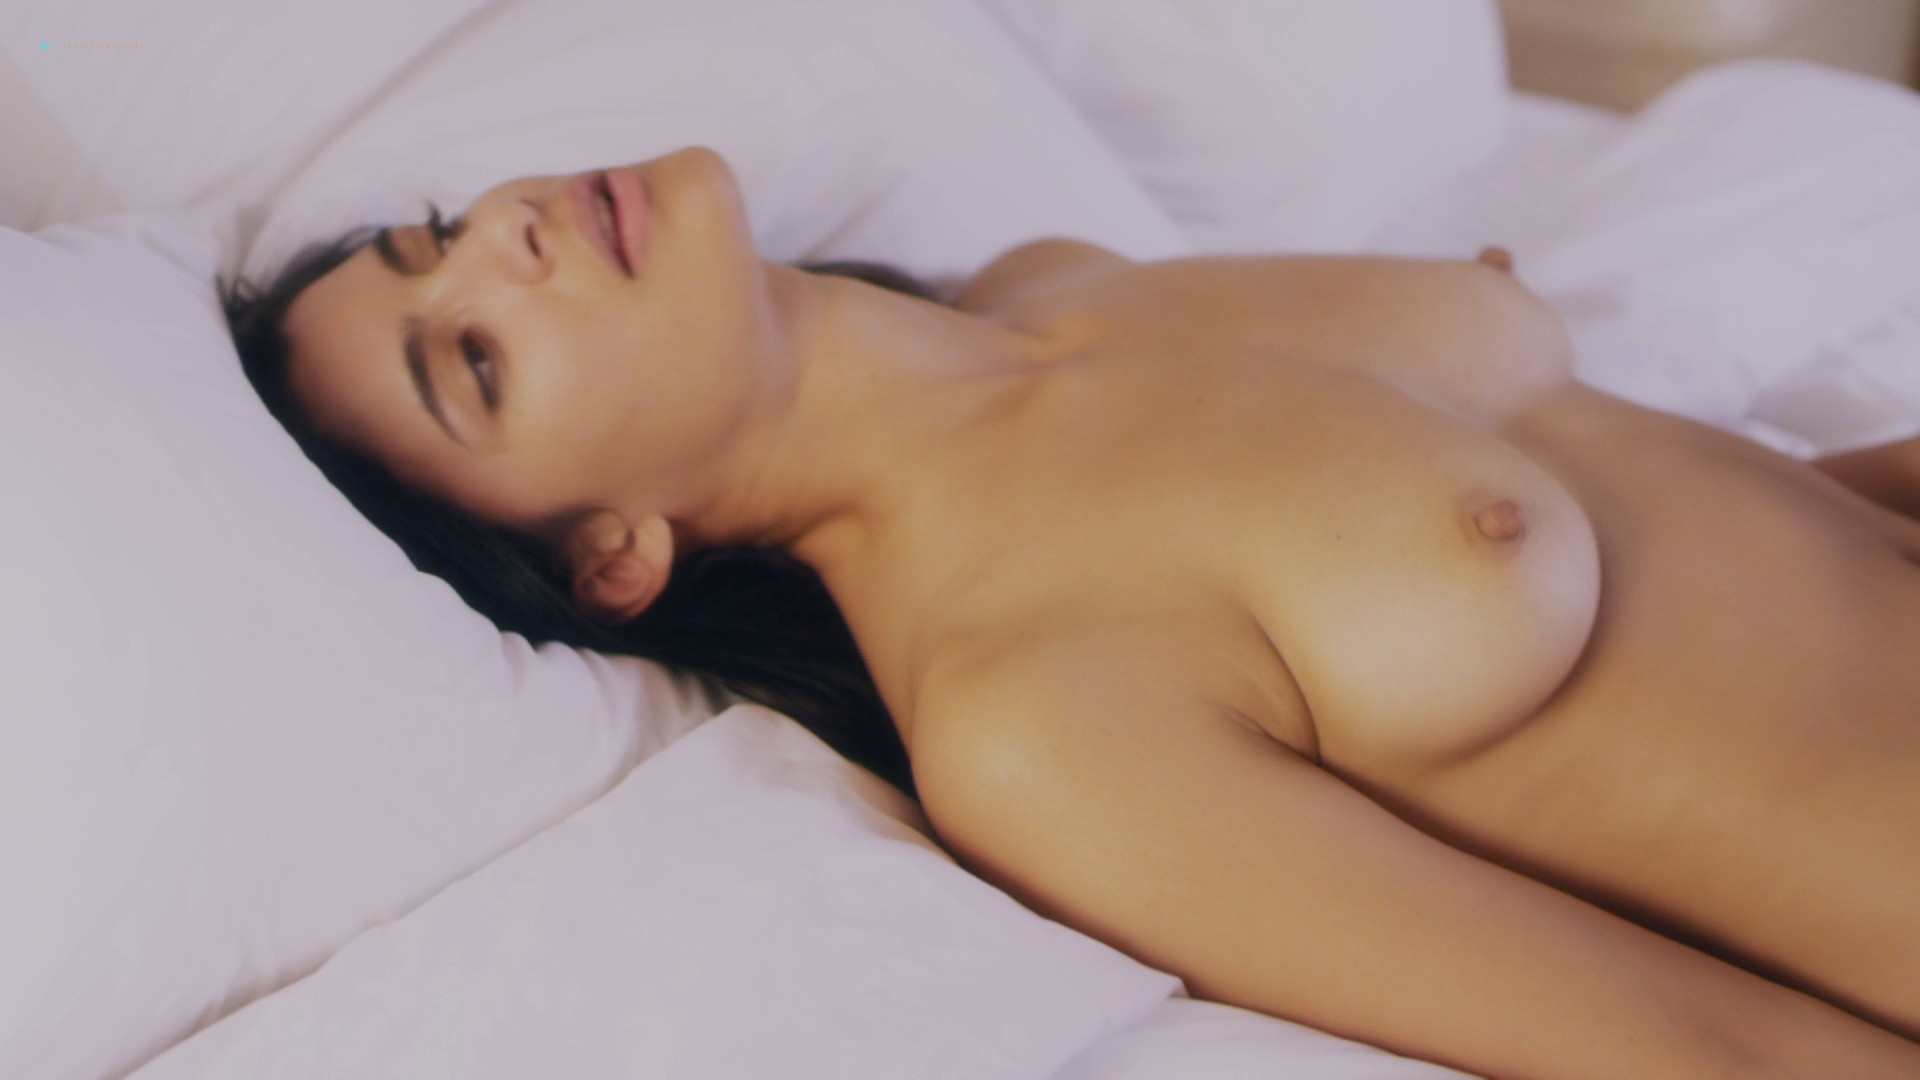 Jessica Clark nude lesbian sex with Barbara Niven nude boobs and butt - A Perfect Ending (2012) HD 1080p (2)